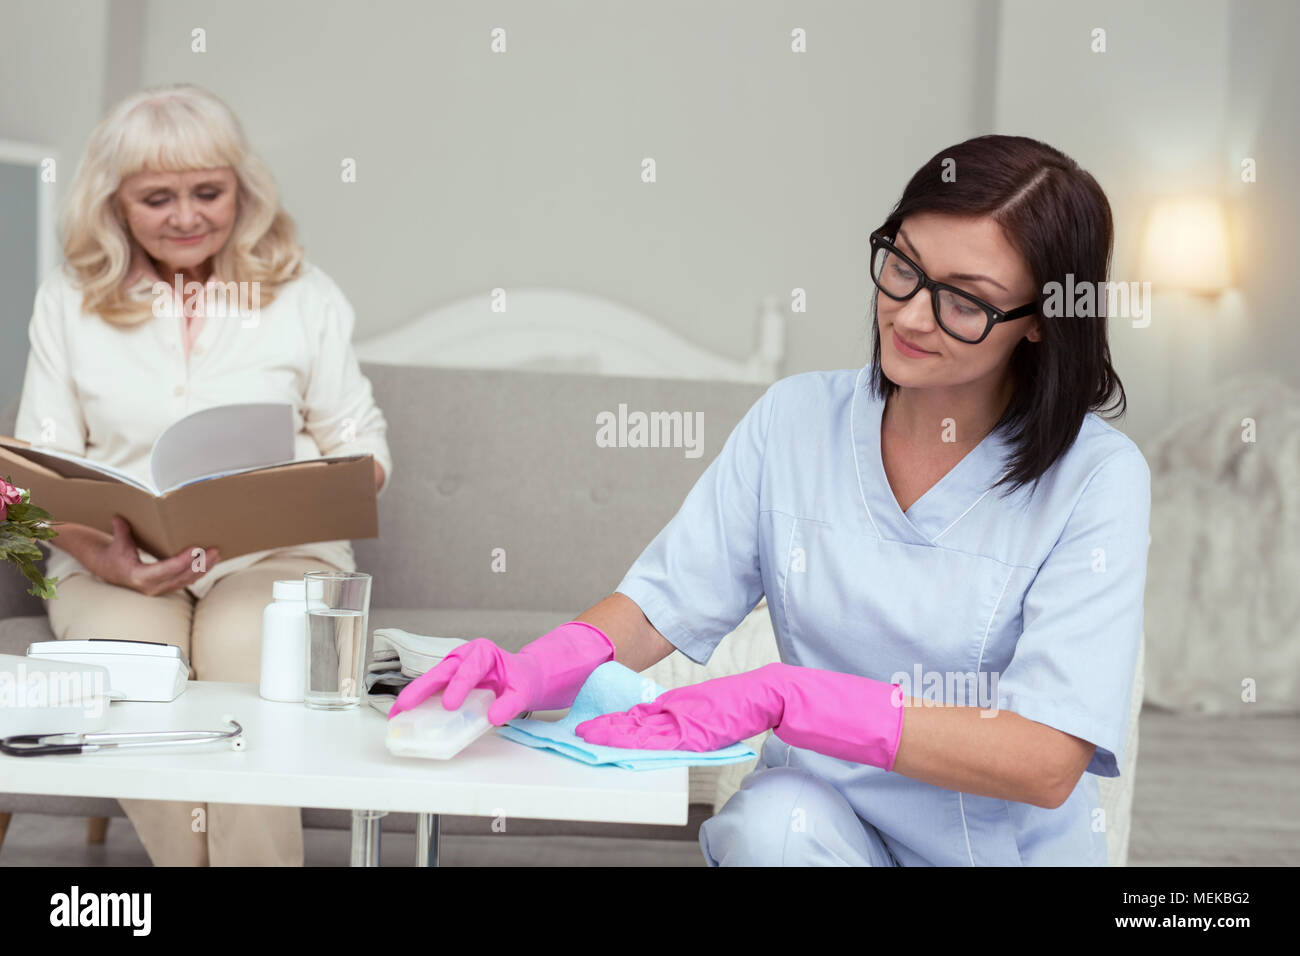 Pensive female caregiver cleaning house - Stock Image